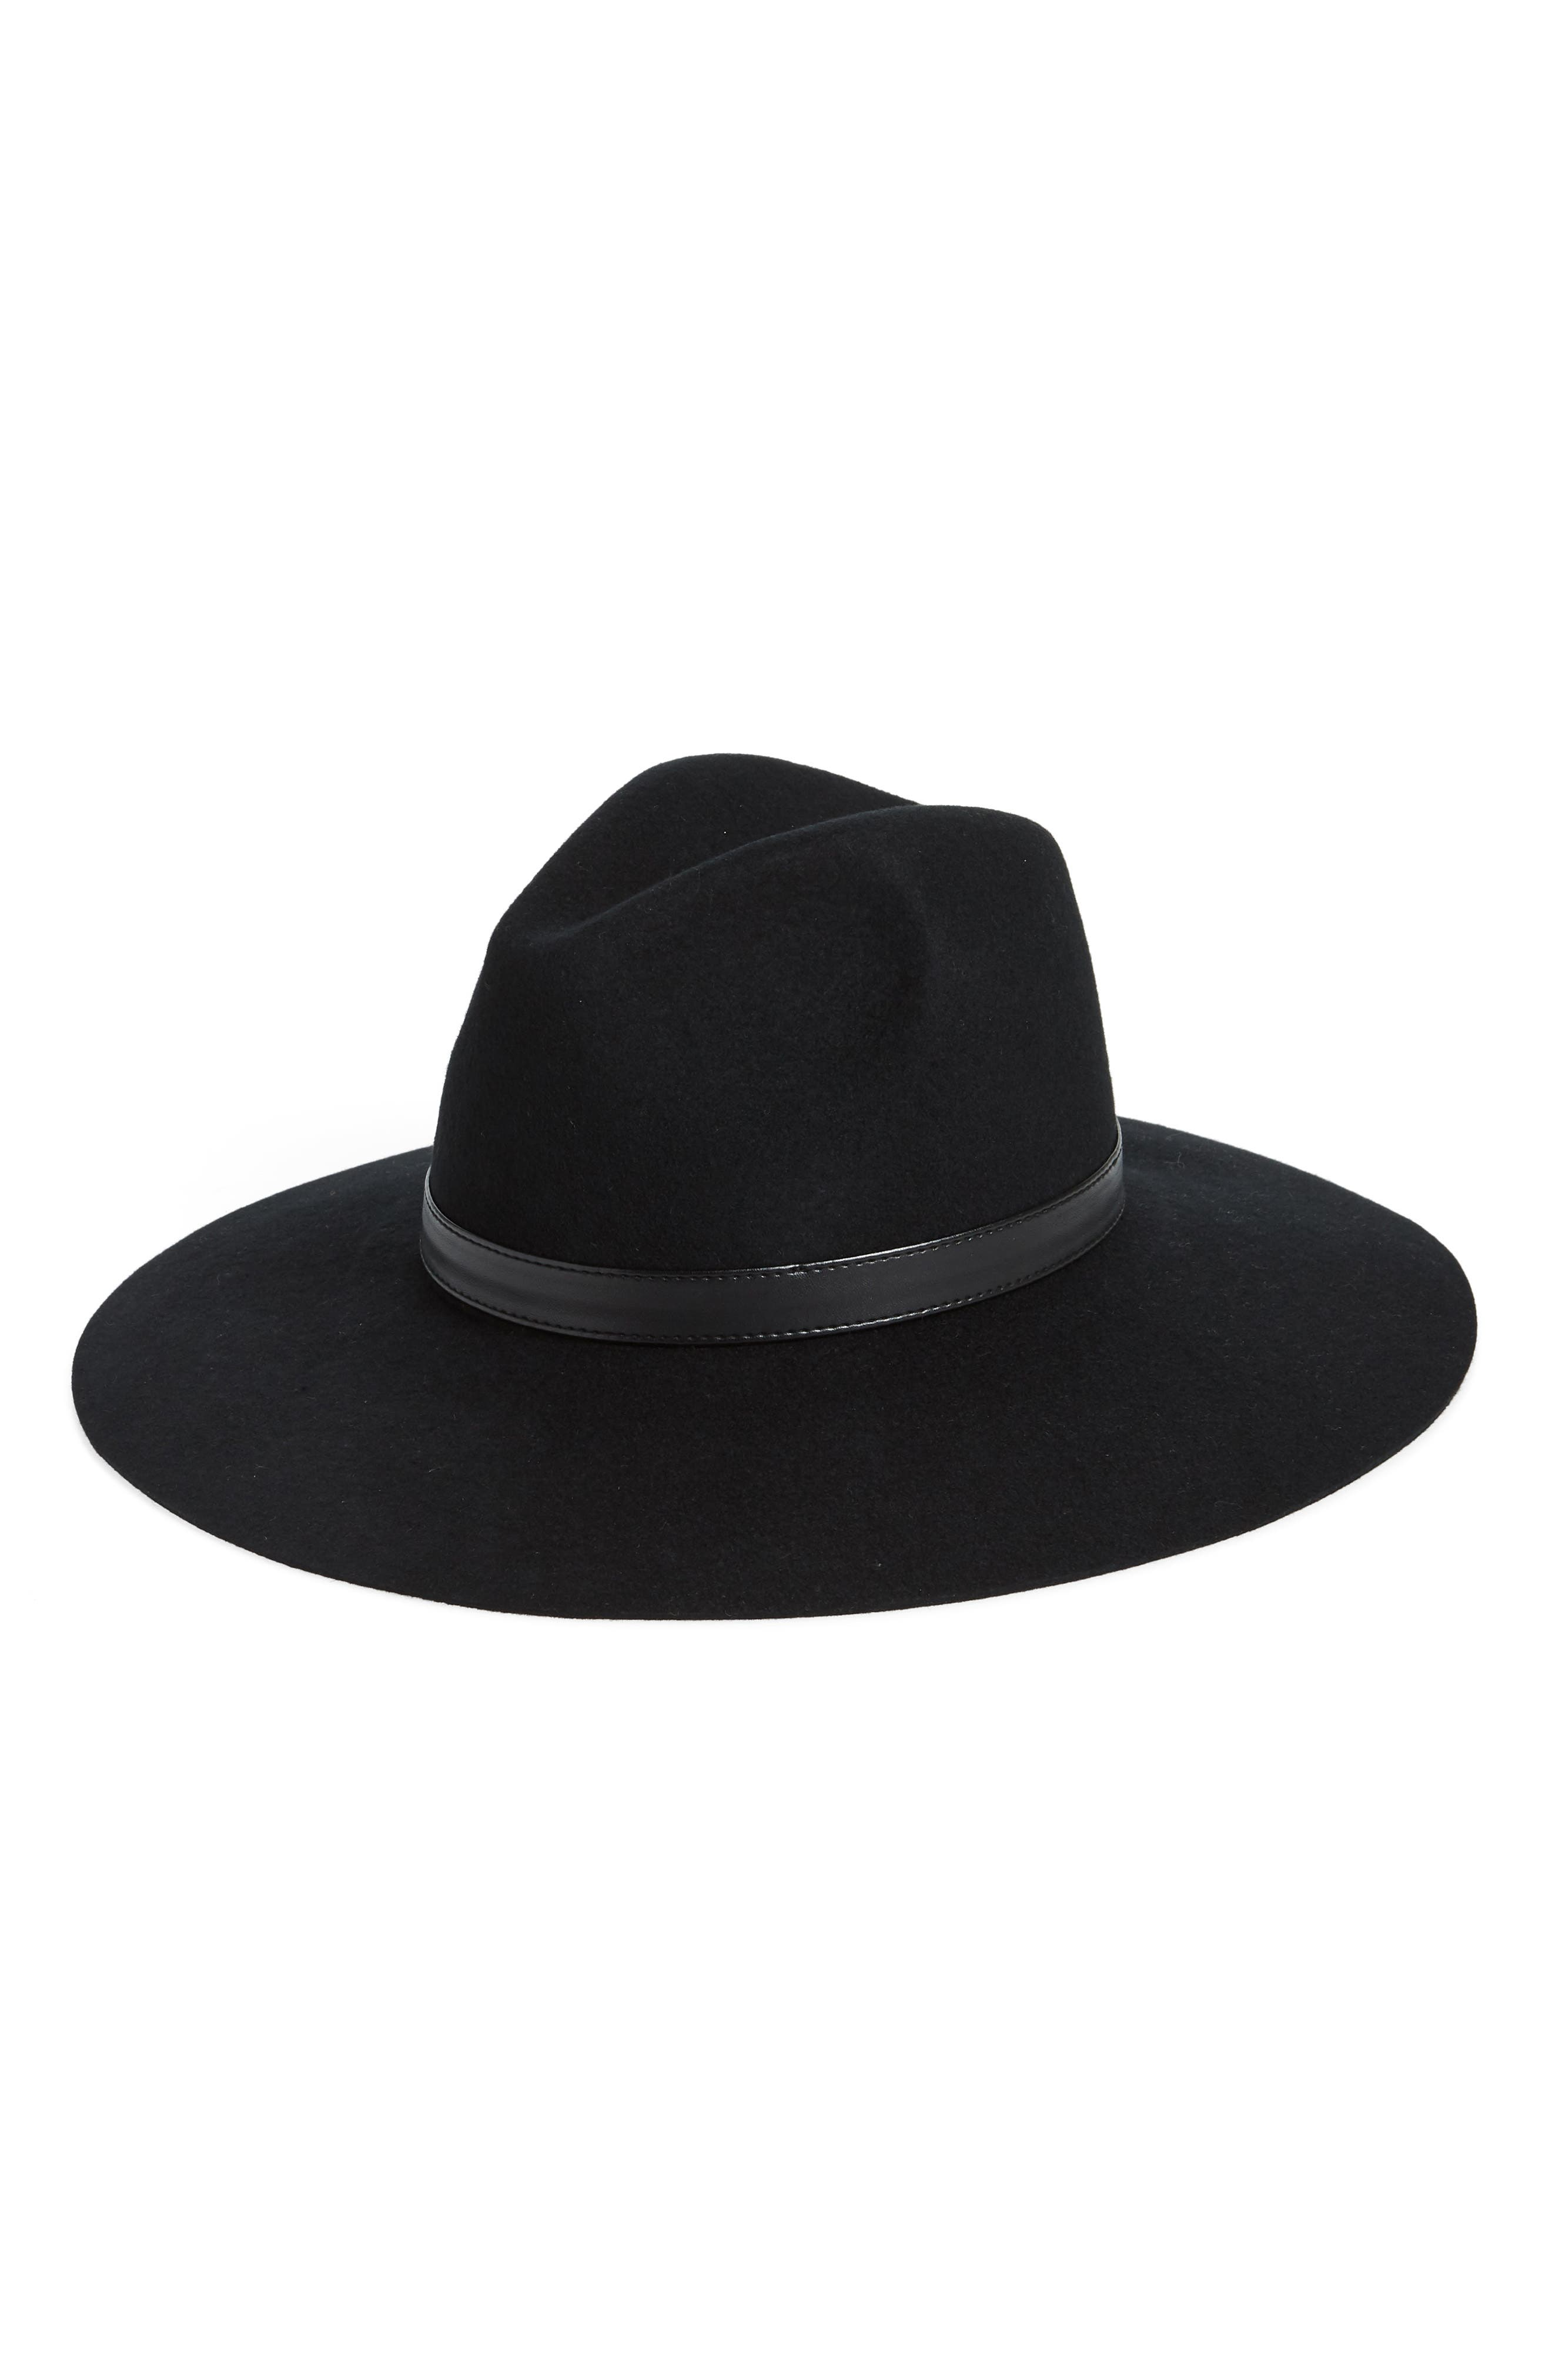 SOLE SOCIETY, Wide Brim Wool Hat, Main thumbnail 1, color, 001